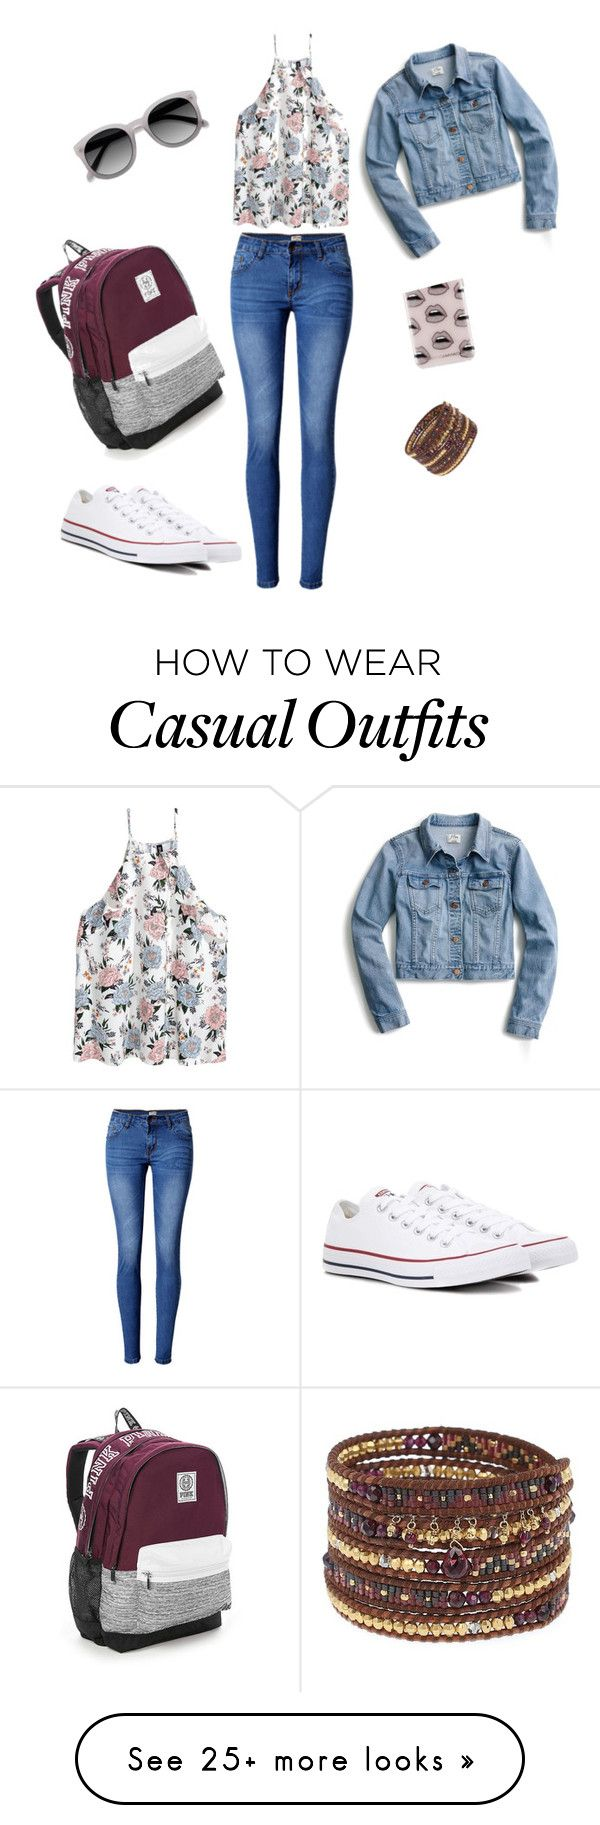 """casual"" by paradisebeuty on Polyvore featuring WithChic, Converse, Victoria's Secret, Chan Luu, Rebecca Minkoff and J.Crew"